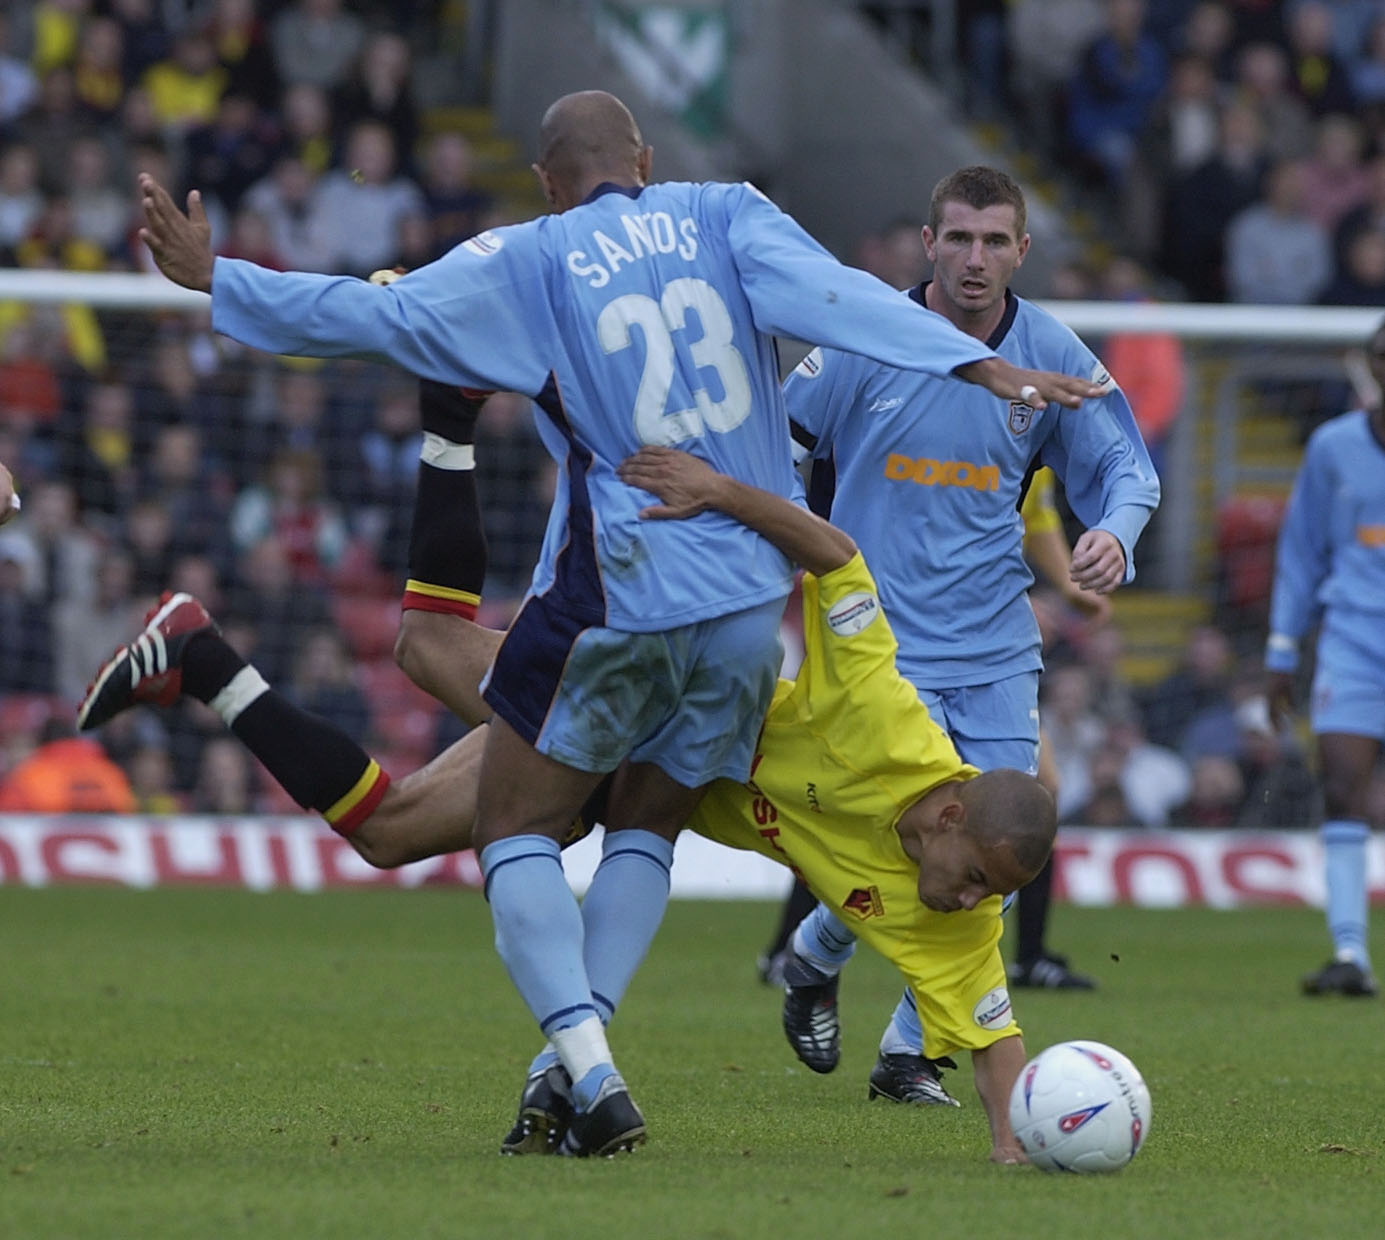 WATFORD - OCTOBER 12: Danny Webber of Watford is up-ended by Georges Santos of Grimsby during the Nationwide League Division One match between Watford and Grimsby Town at Vicarage Road, Watford, England on October 12, 2002. (Photo by Clive Brunskill/Getty